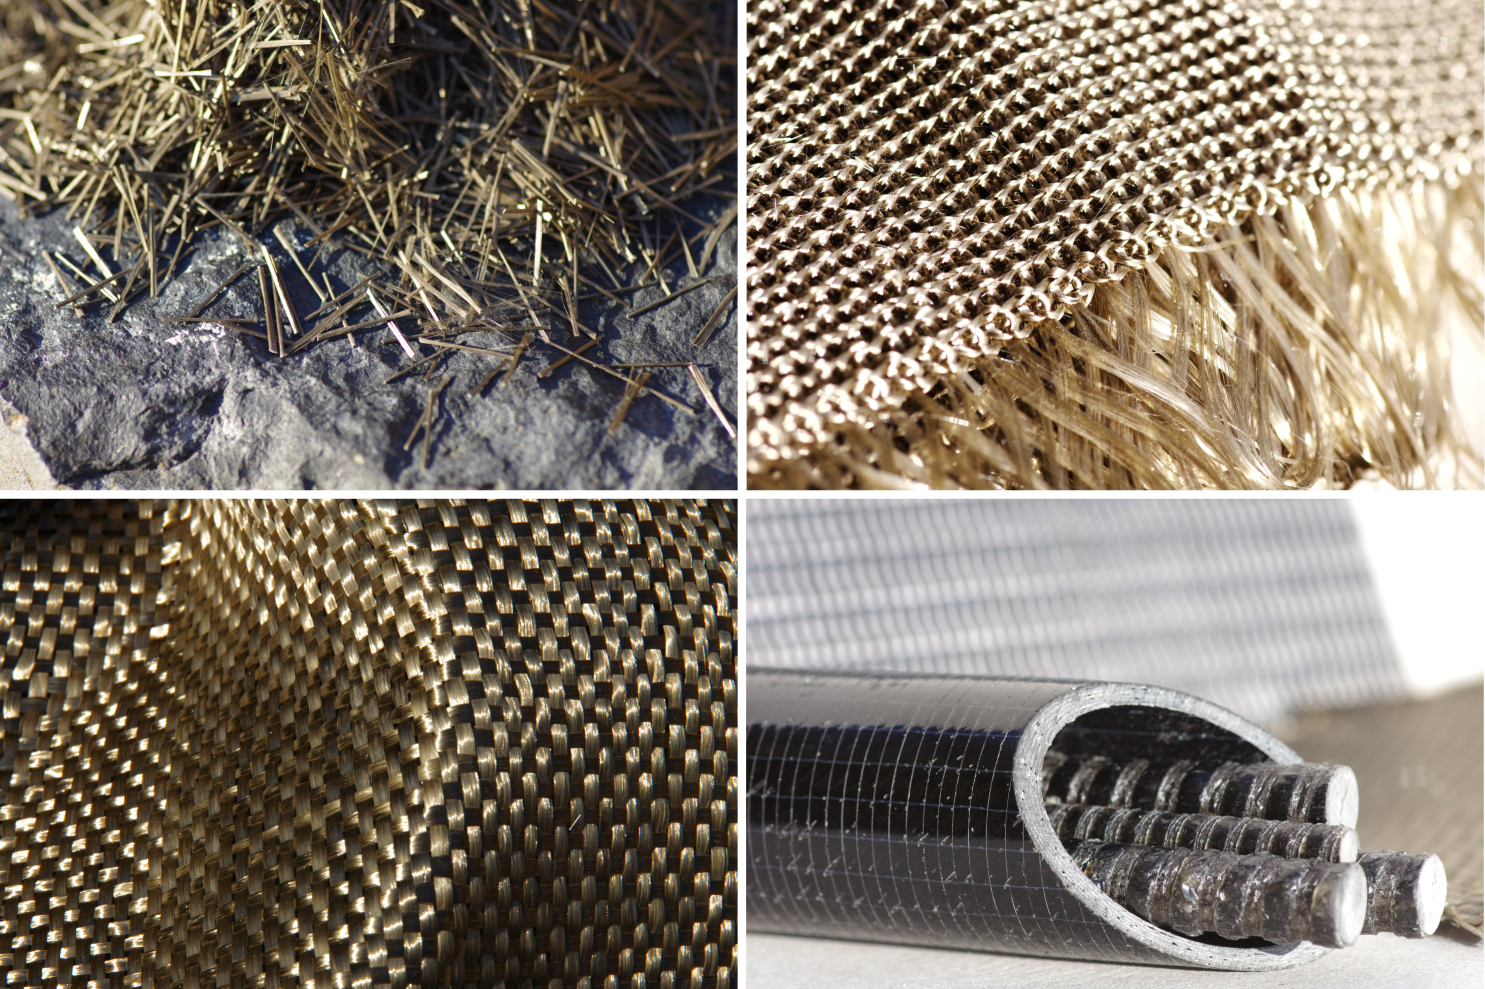 DIN SPEC 25714 - Standard for mineral high-performance fibers of natural origin